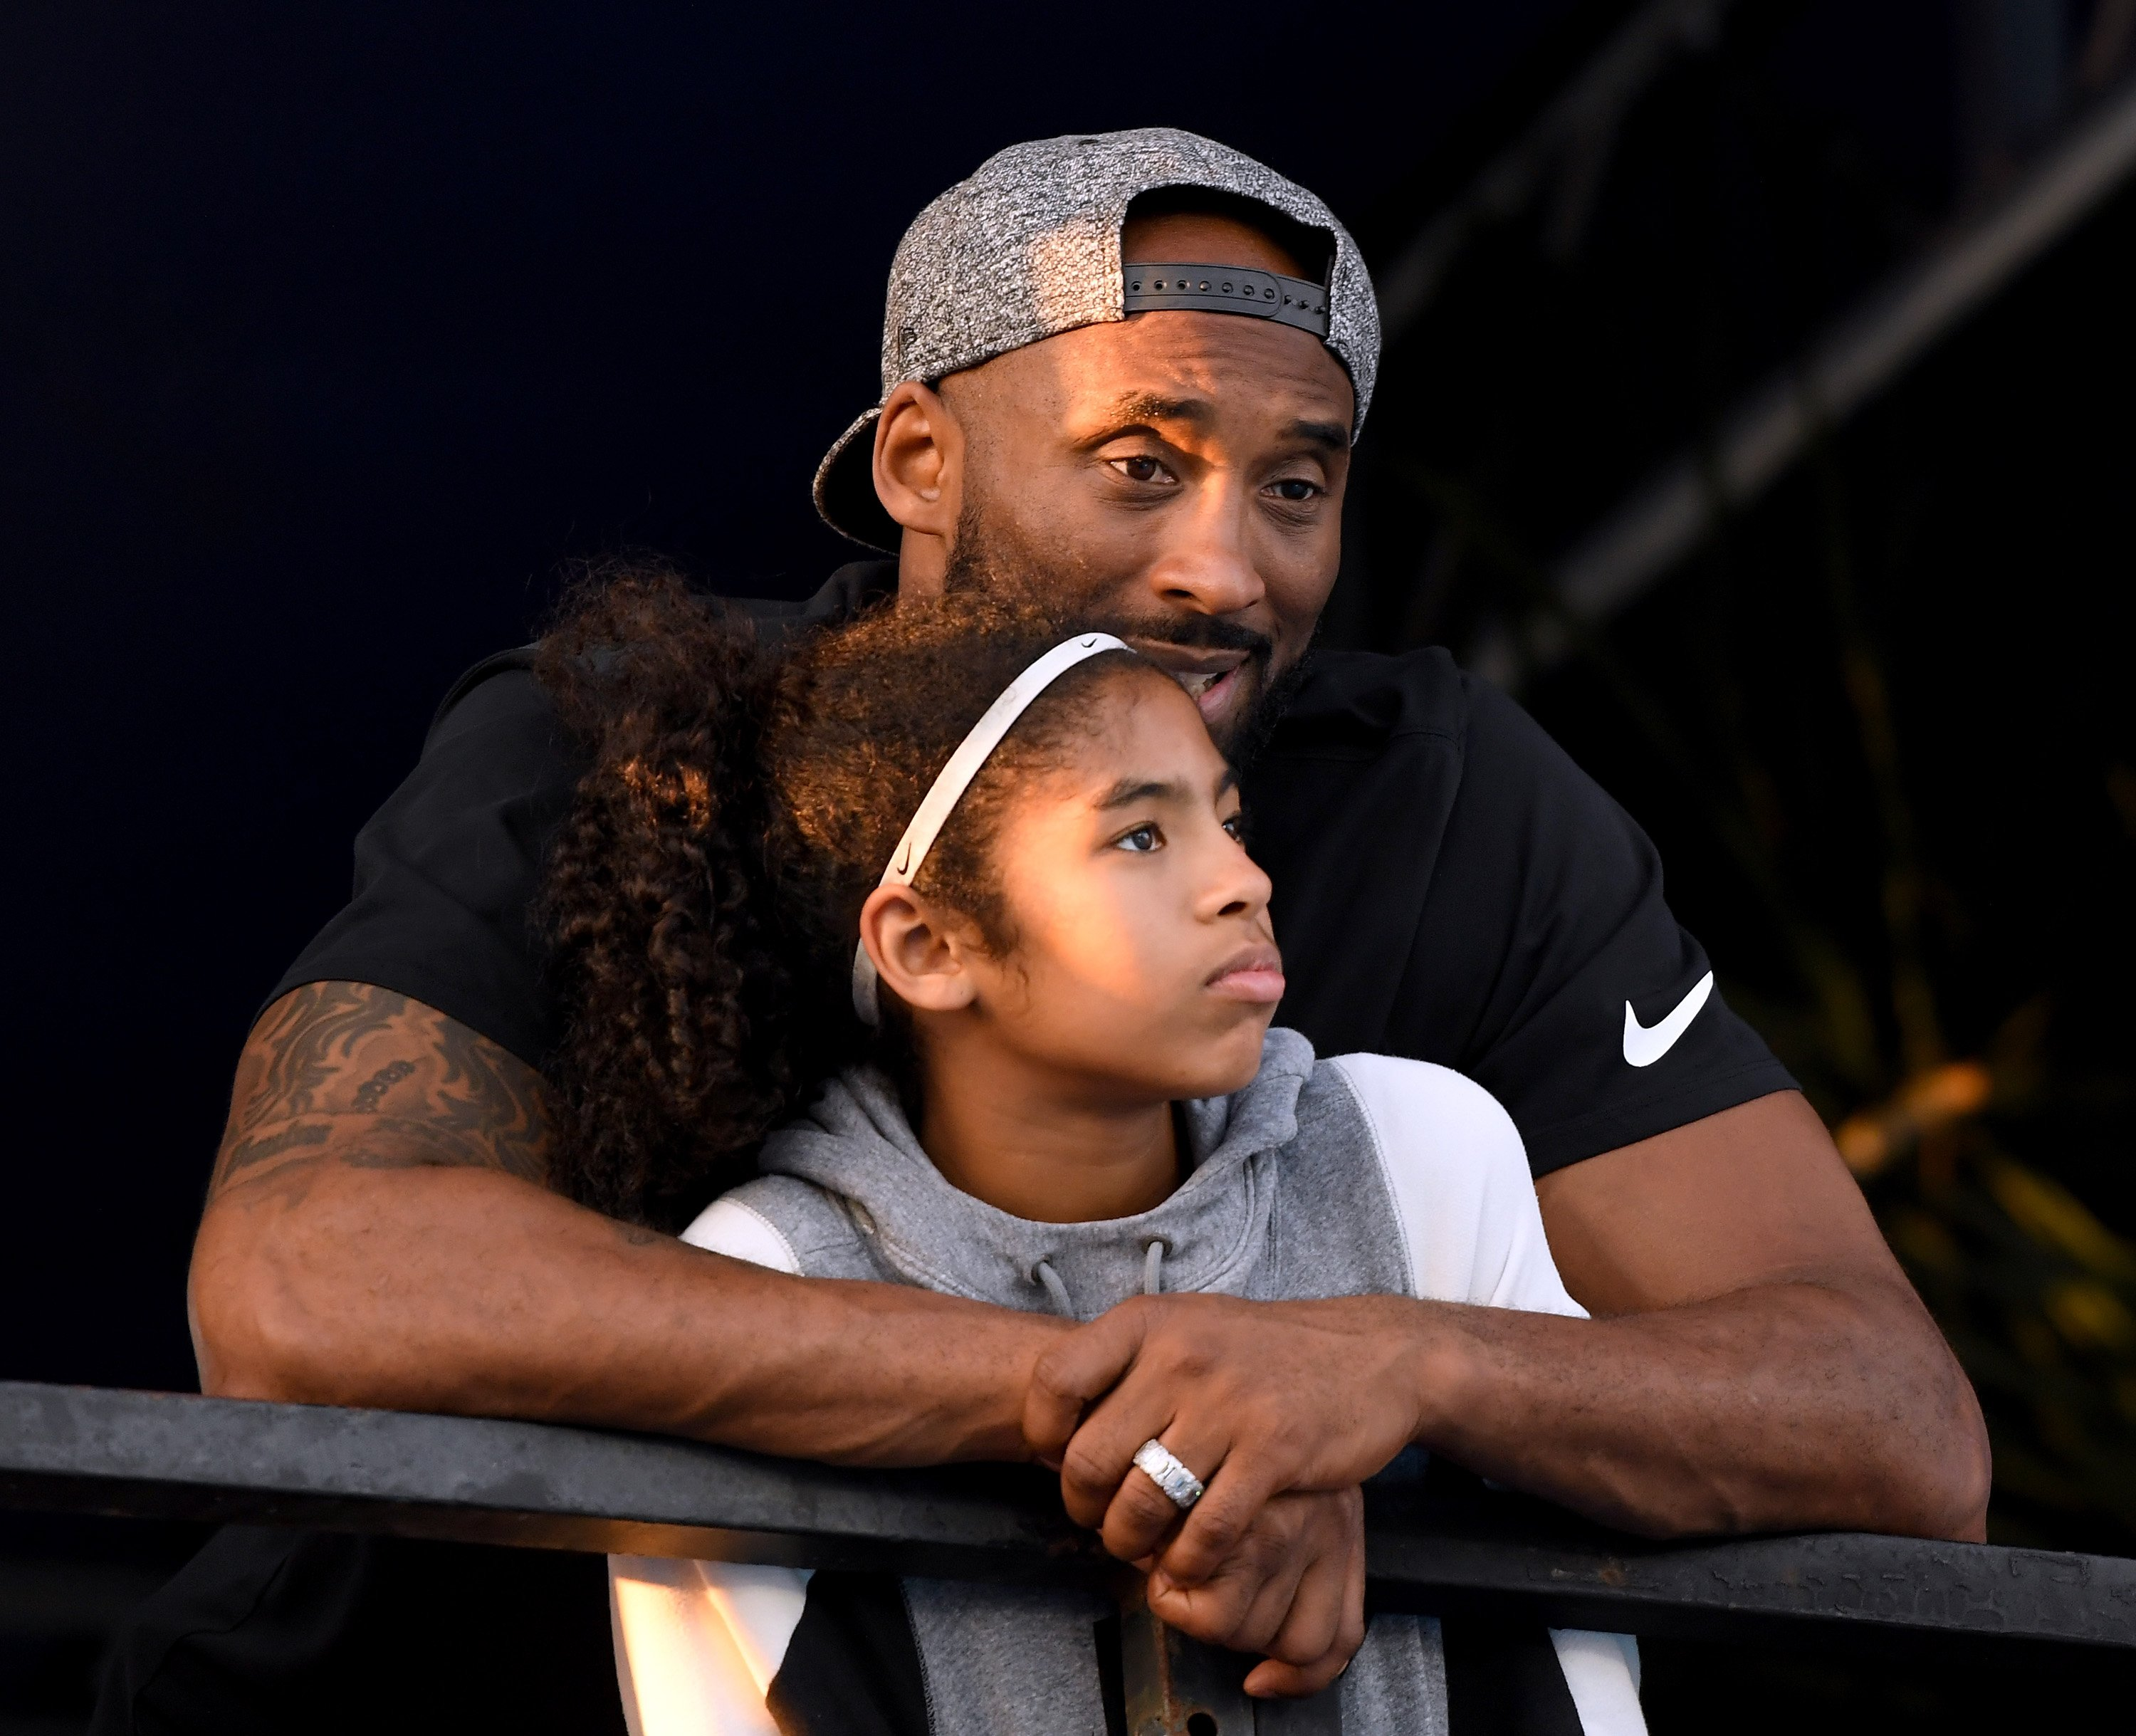 Kobe Bryant and daughter Gianna Bryant watch during day 2 of the Phillips 66 National Swimming Championships on July 26, 2018 in California | Photo: Getty Images